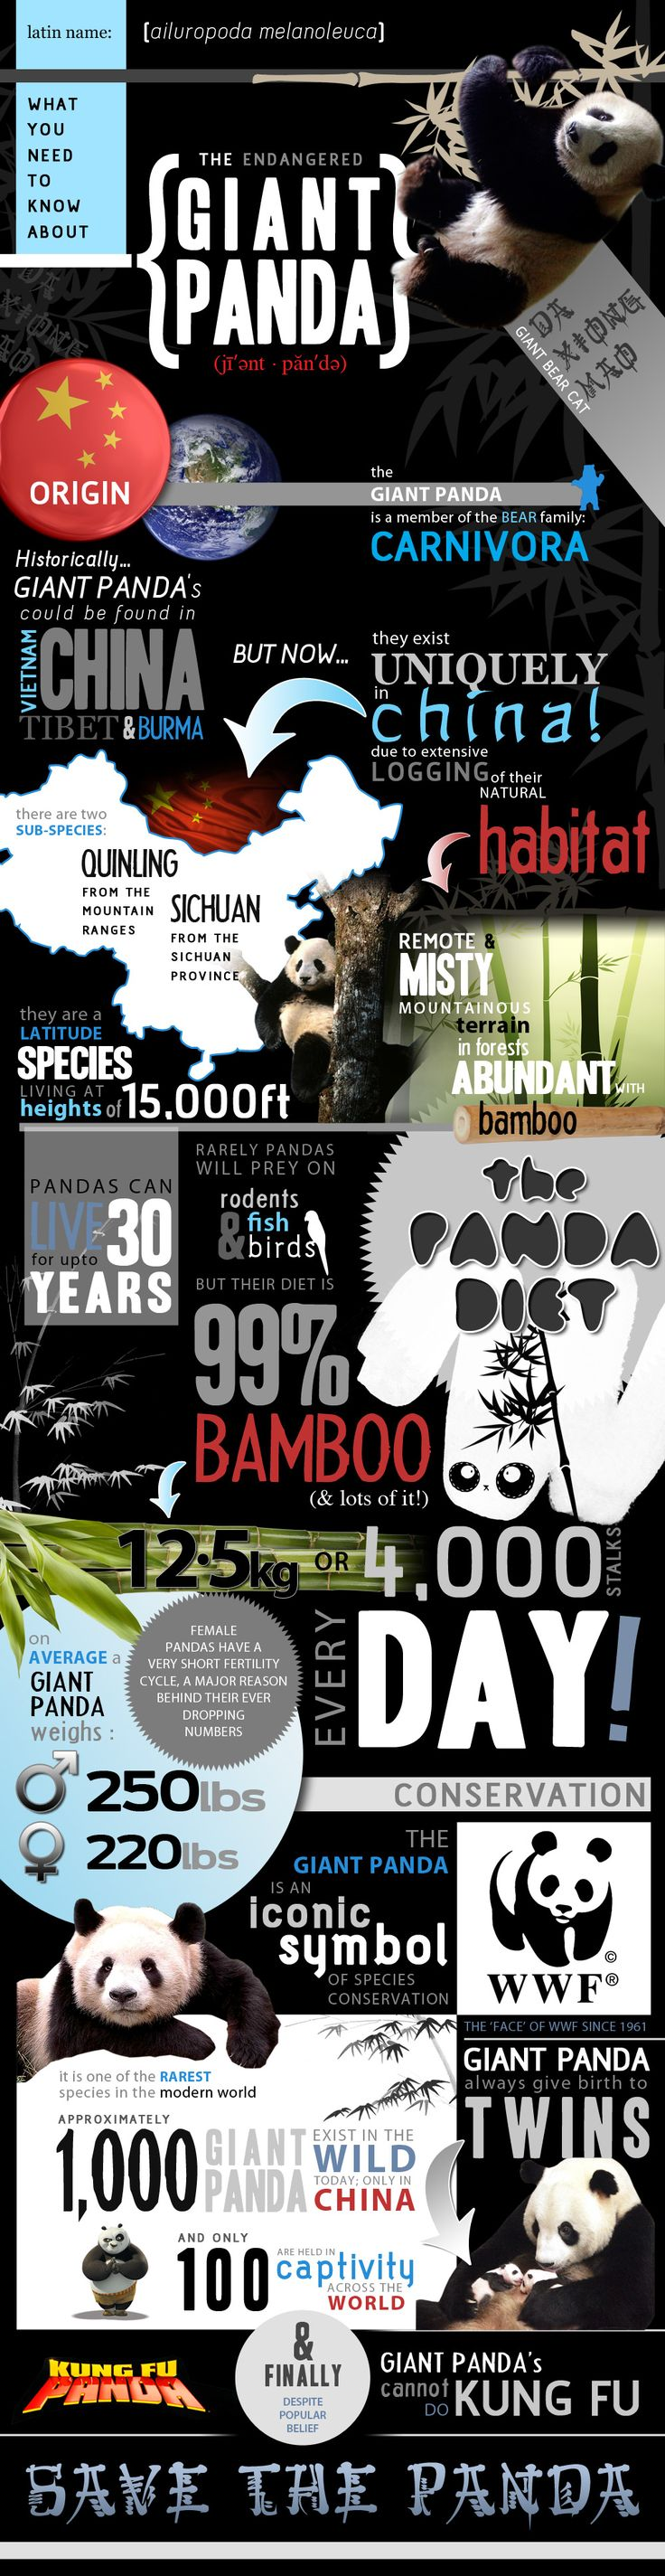 One of the most endangered animals in the world, the Giant Panda, needs protecting. We have made an infographic with all the facts and figures you nee